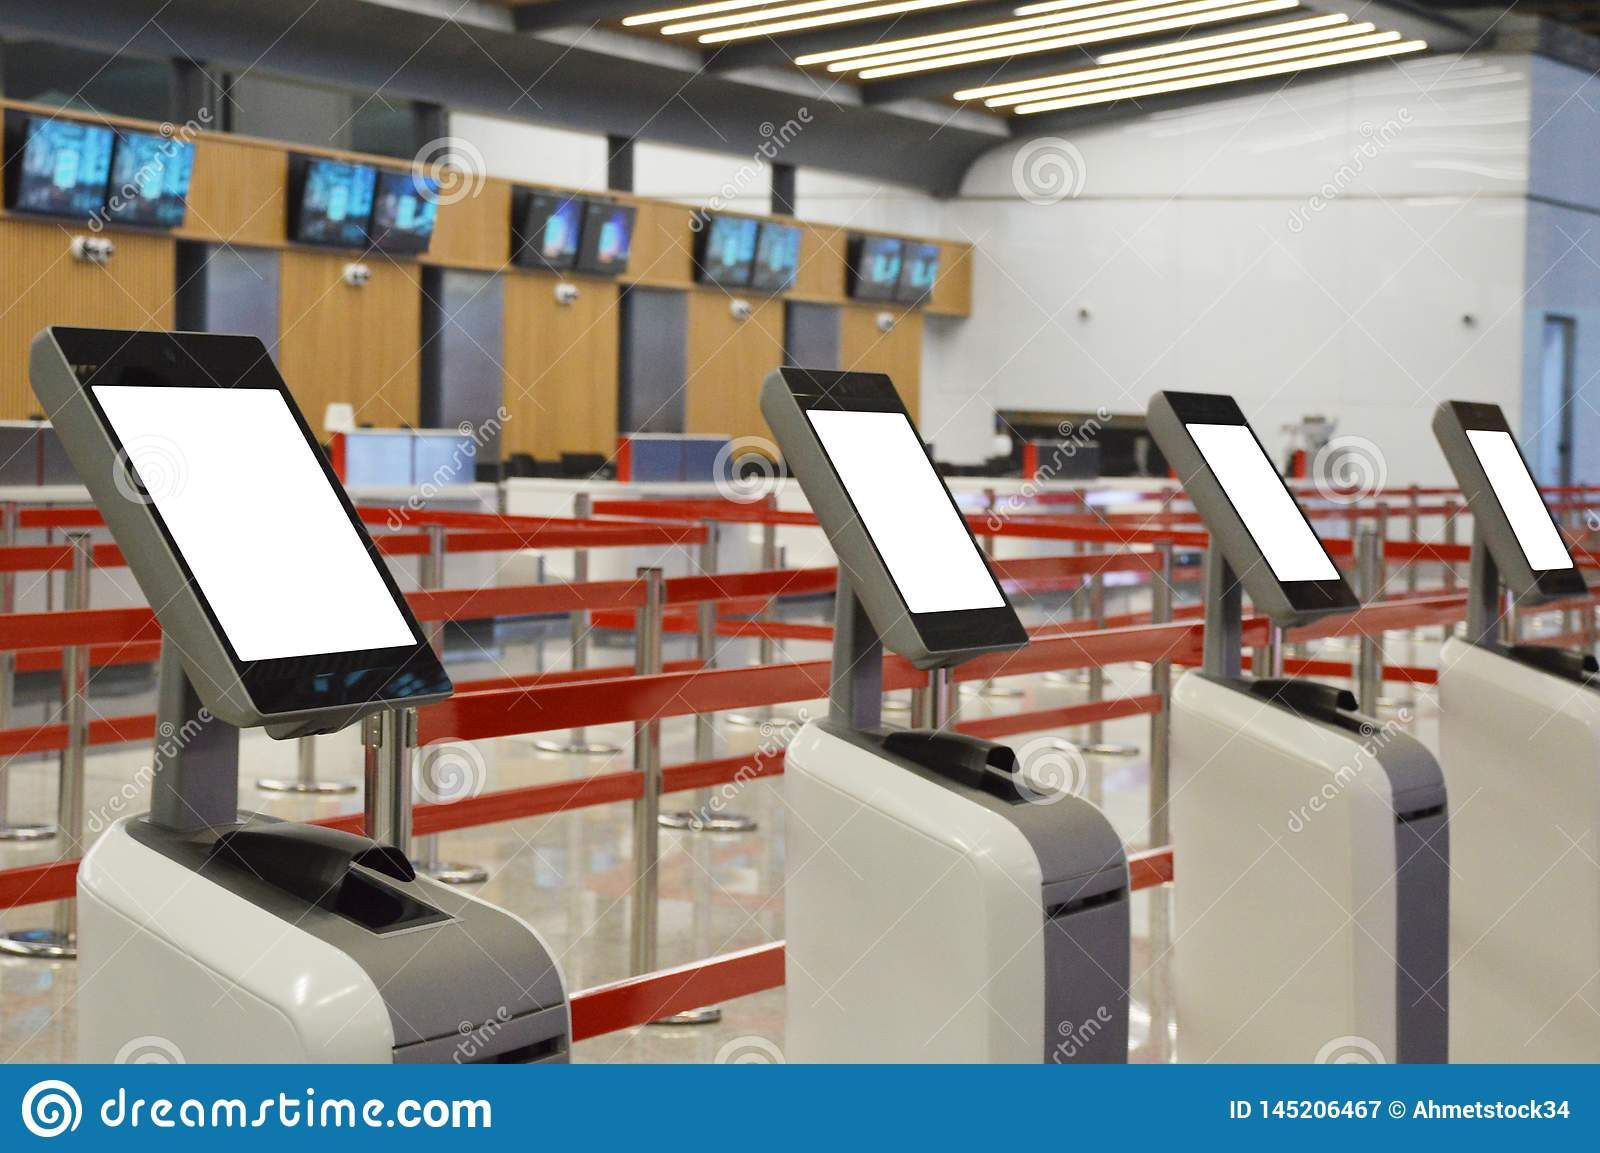 Airport Online Self Check-in Kiosk Stock Image - Image of design